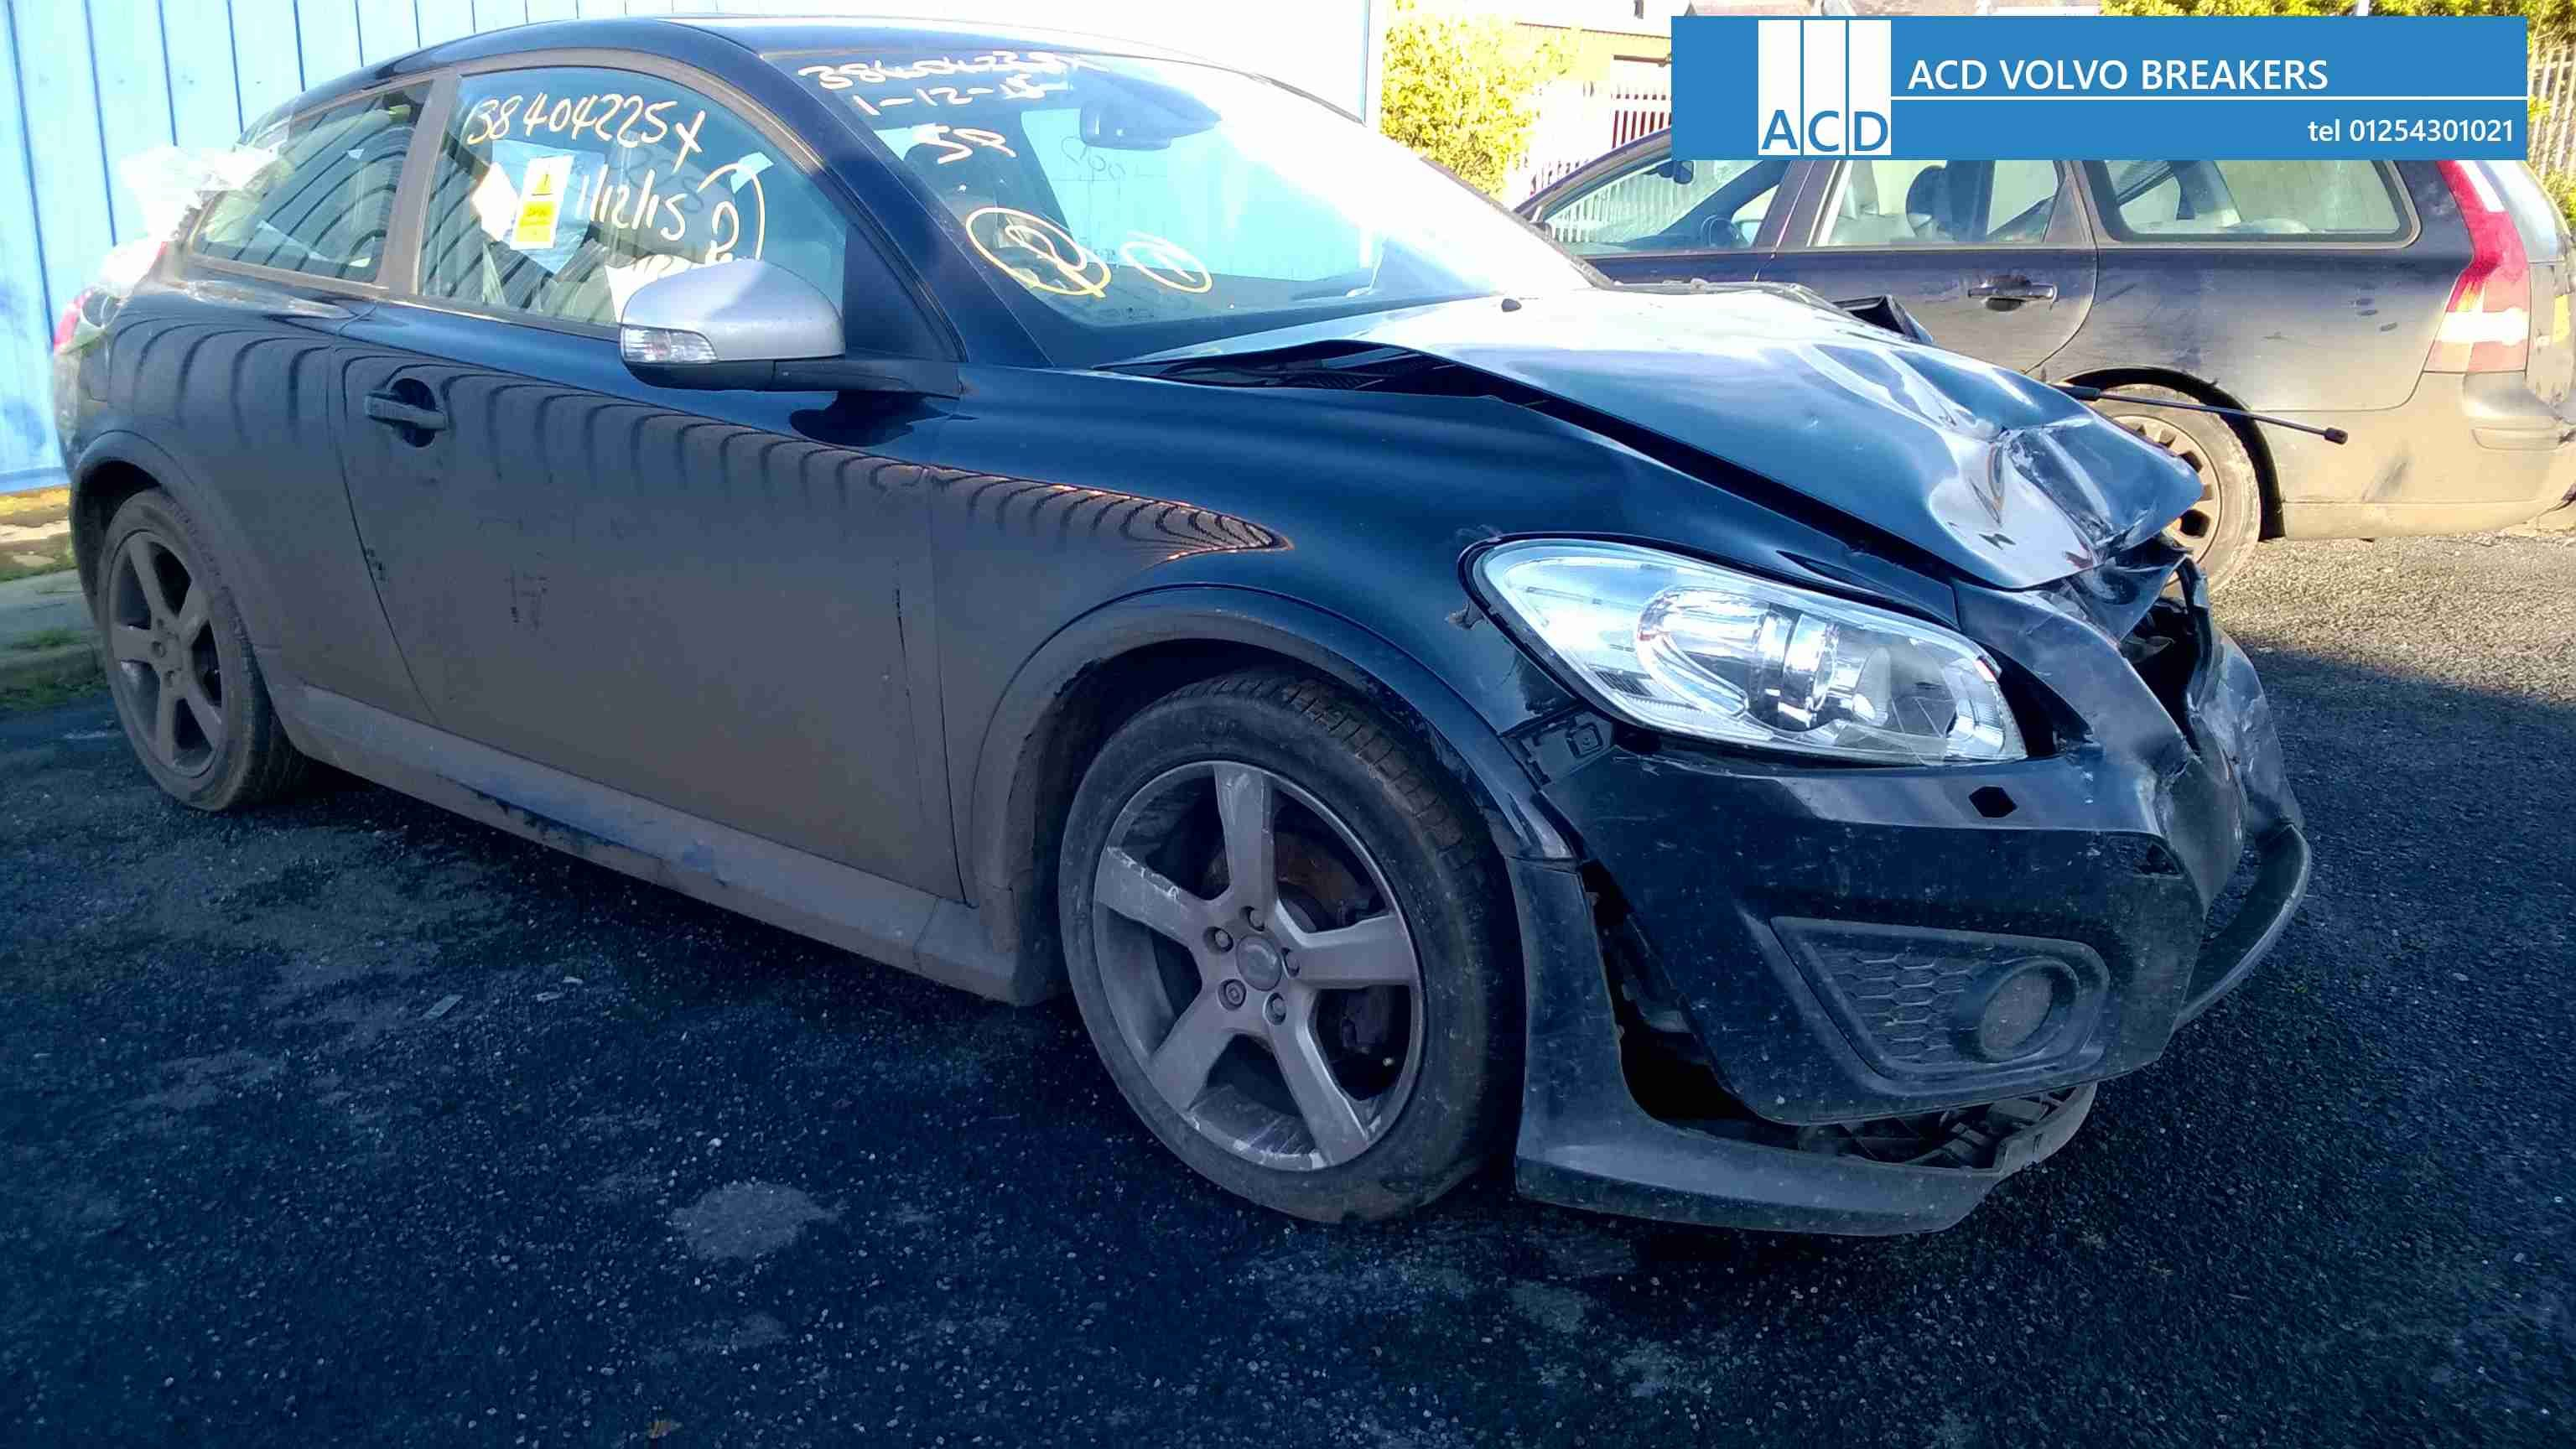 Used Volvo parts Volvo C30 parts Volvo C30 R design 1.6L 6 speed manual  2010. All parts available for breaking. Stock Number 1605 Any enquirers  call ACD of ...